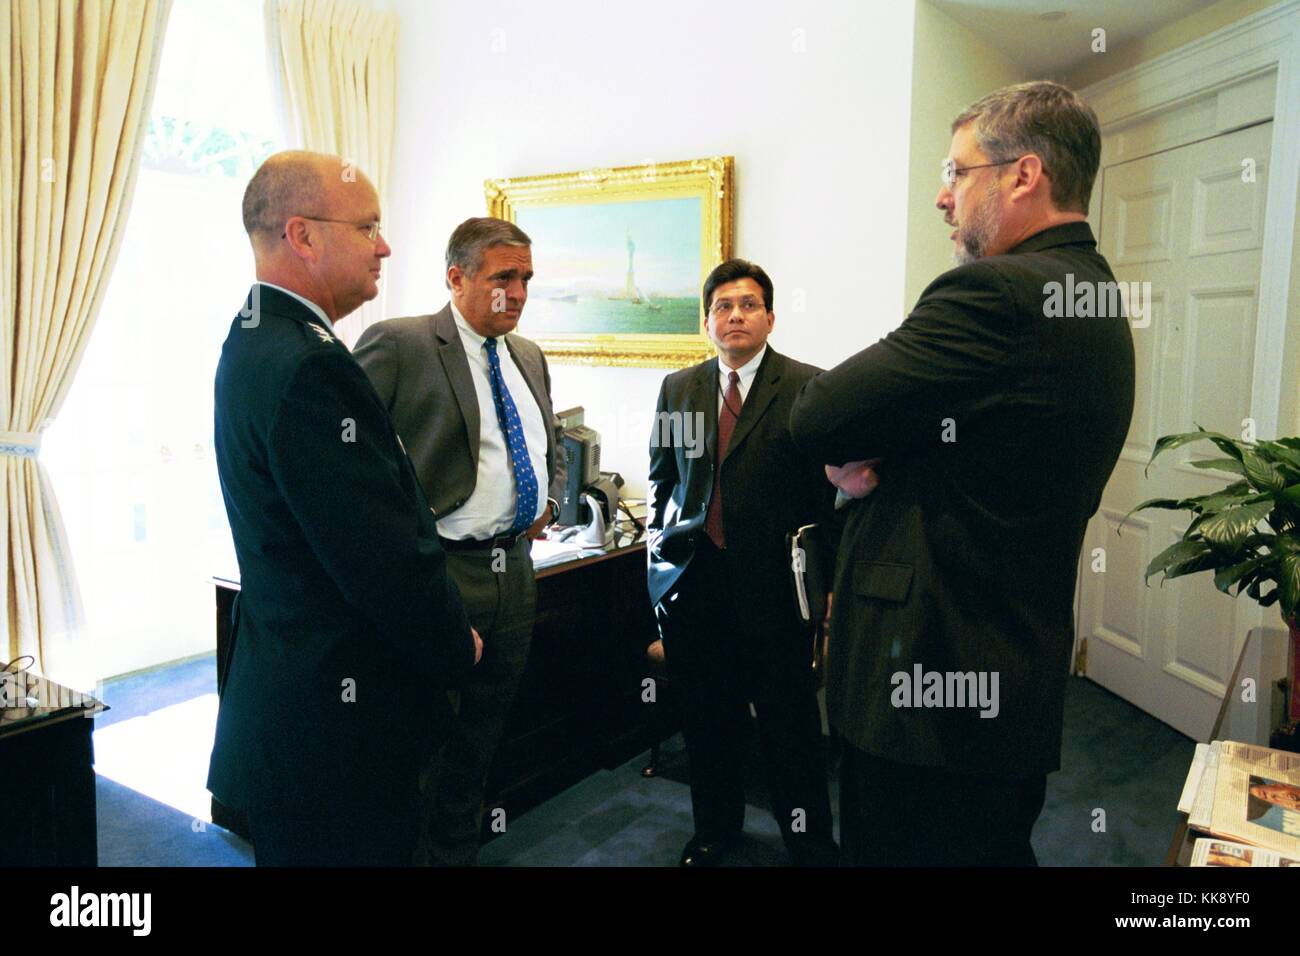 Former Chief of Staff to the Vice President David Addington Talks with Alberto Gonzales and George Tenet. Image - Stock Image